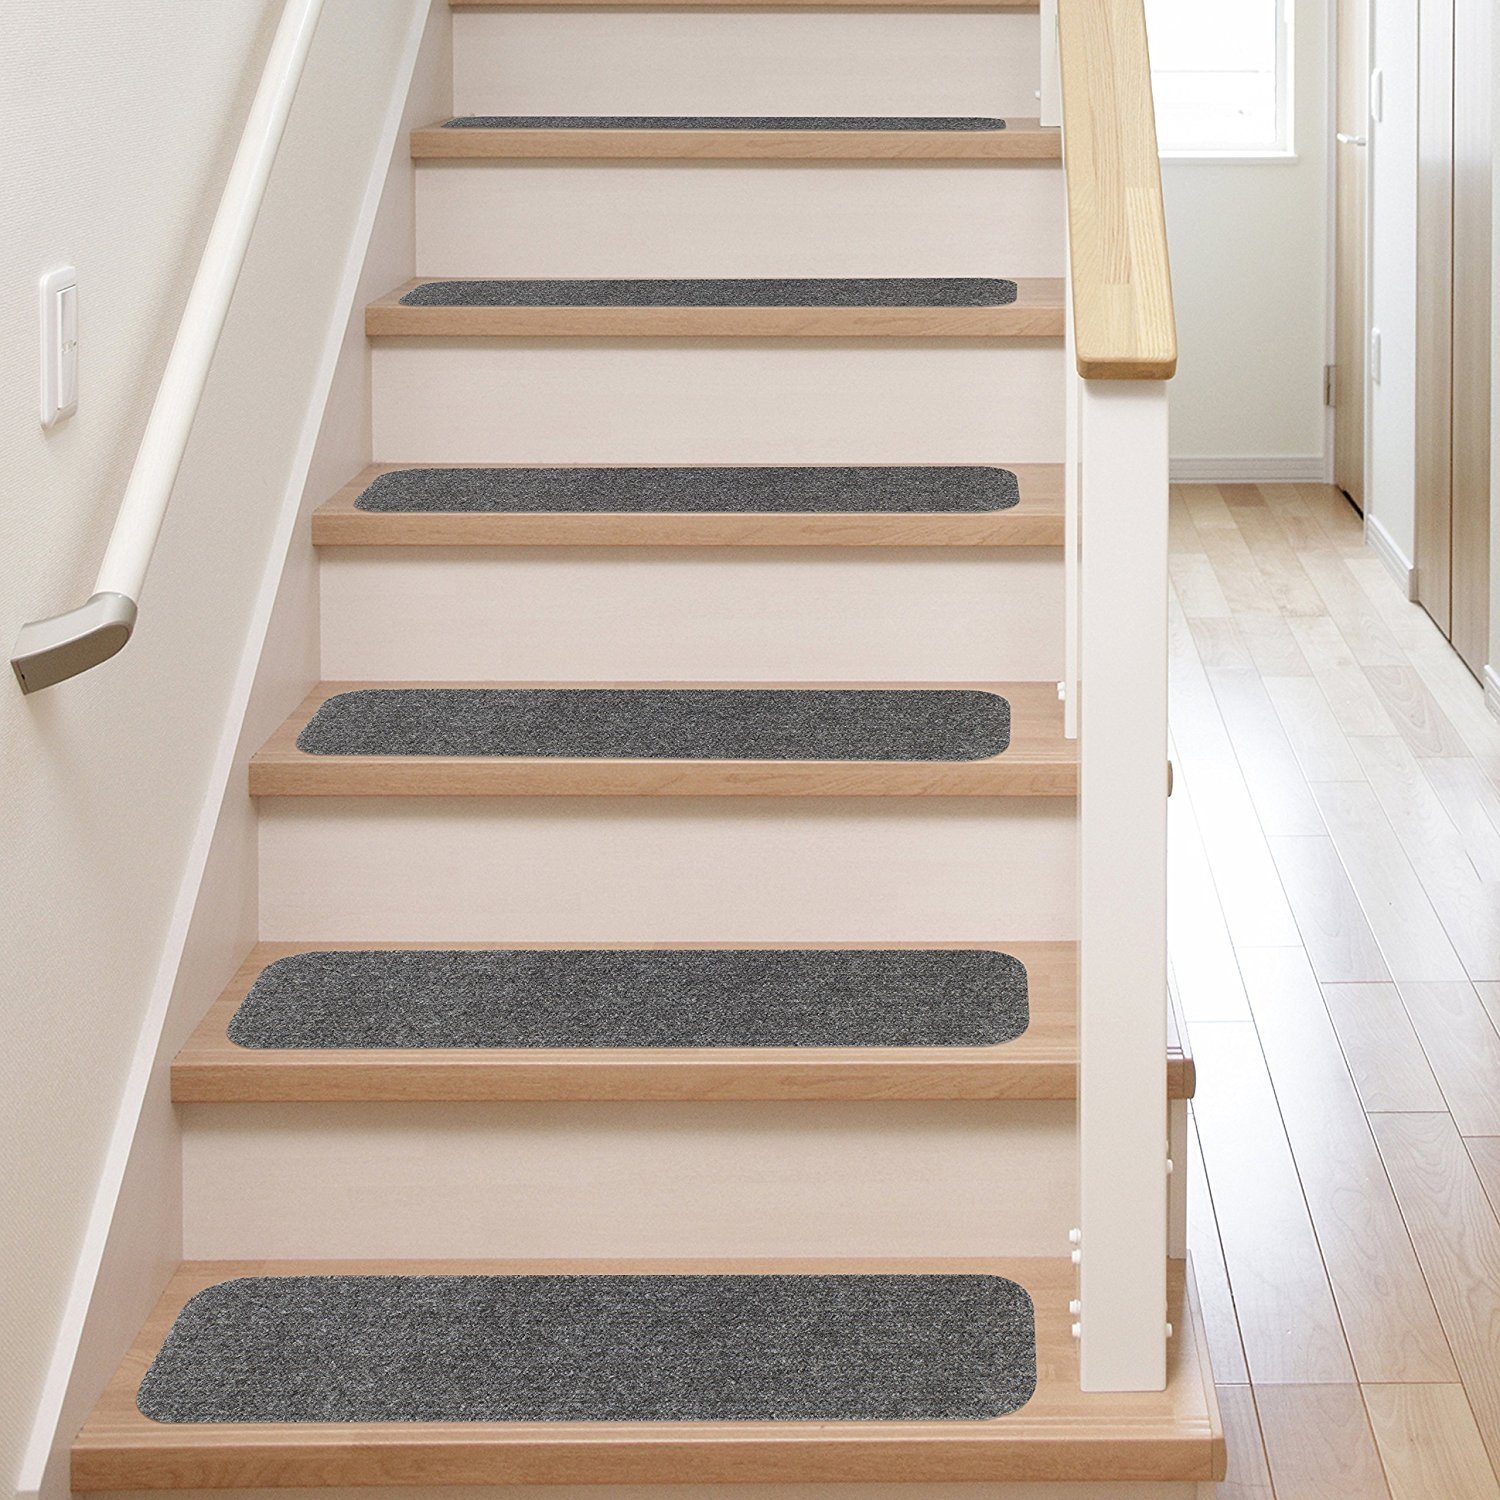 13 Stair Treads Non Slip Carpet Pads Easy Tape Installation In Adhesive Carpet Strips For Stairs (Image 1 of 15)